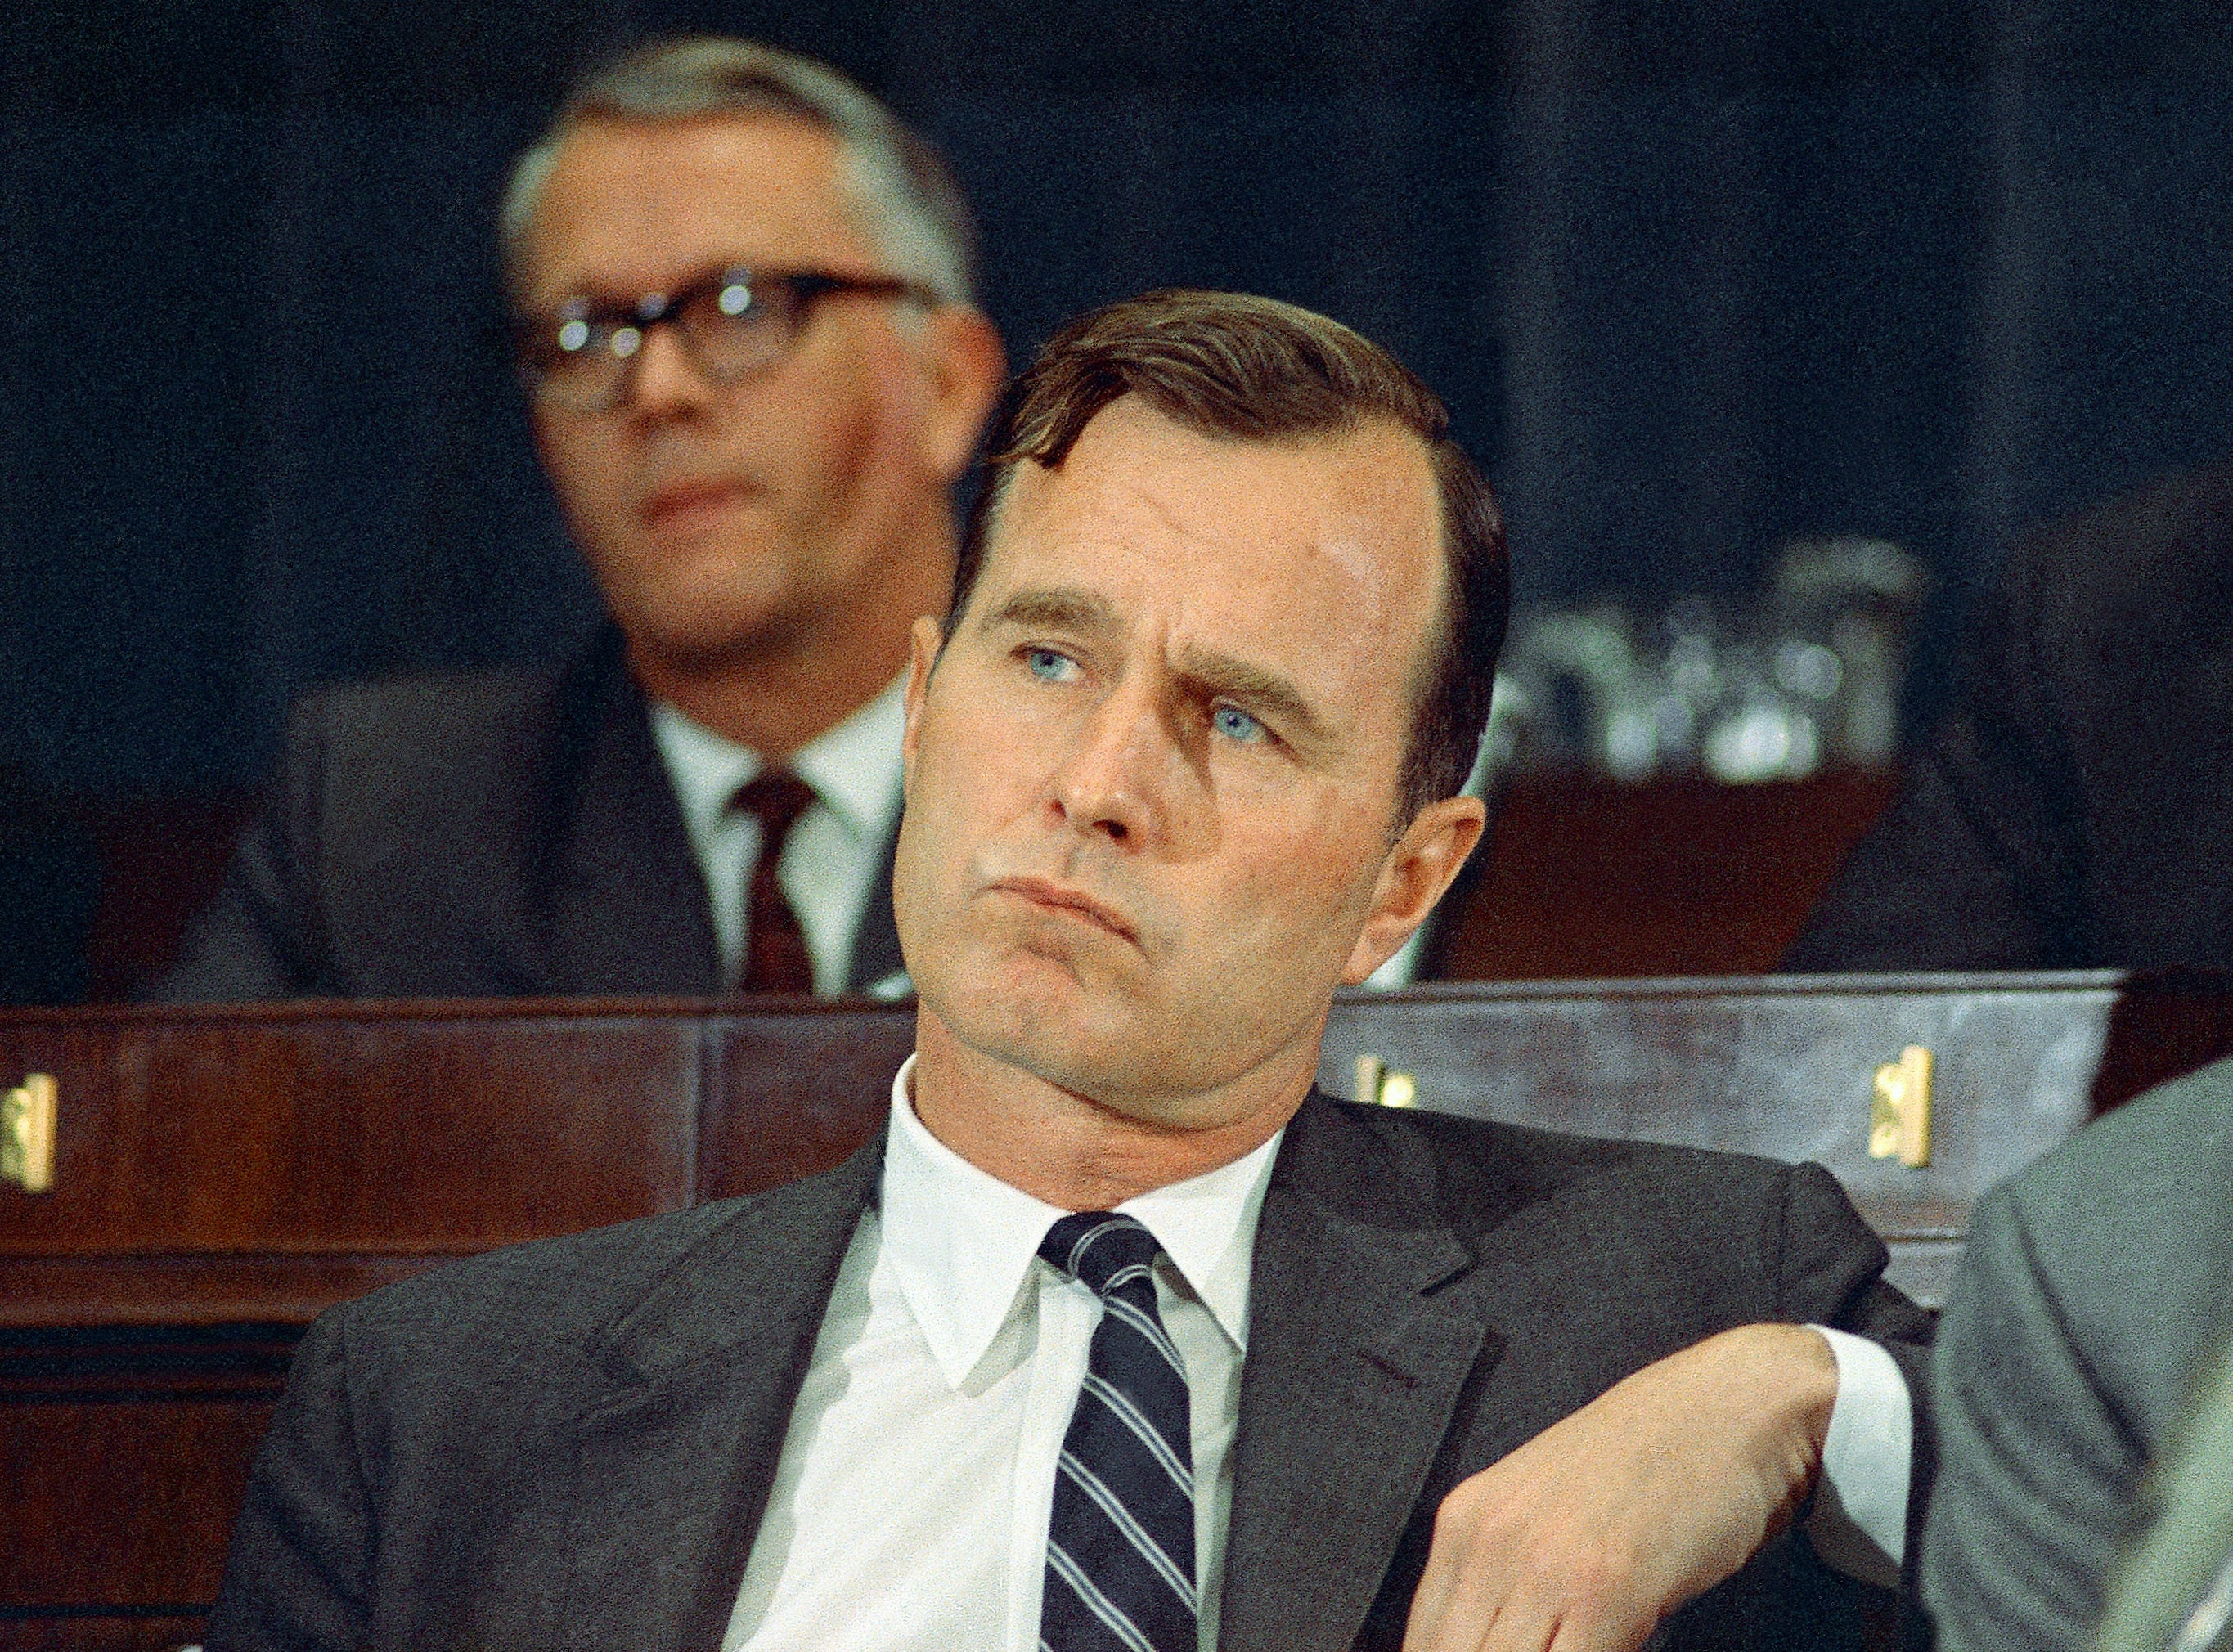 FILE - In this March 6, 1968 file photo, George H.W. Bush, R-Texas, appears in Washington. Bush died at the age of 94 on Friday, Nov. 30, 2018, about eight months after the death of his wife, Barbara Bush. (AP Photo/Charles Tasnadi, File)